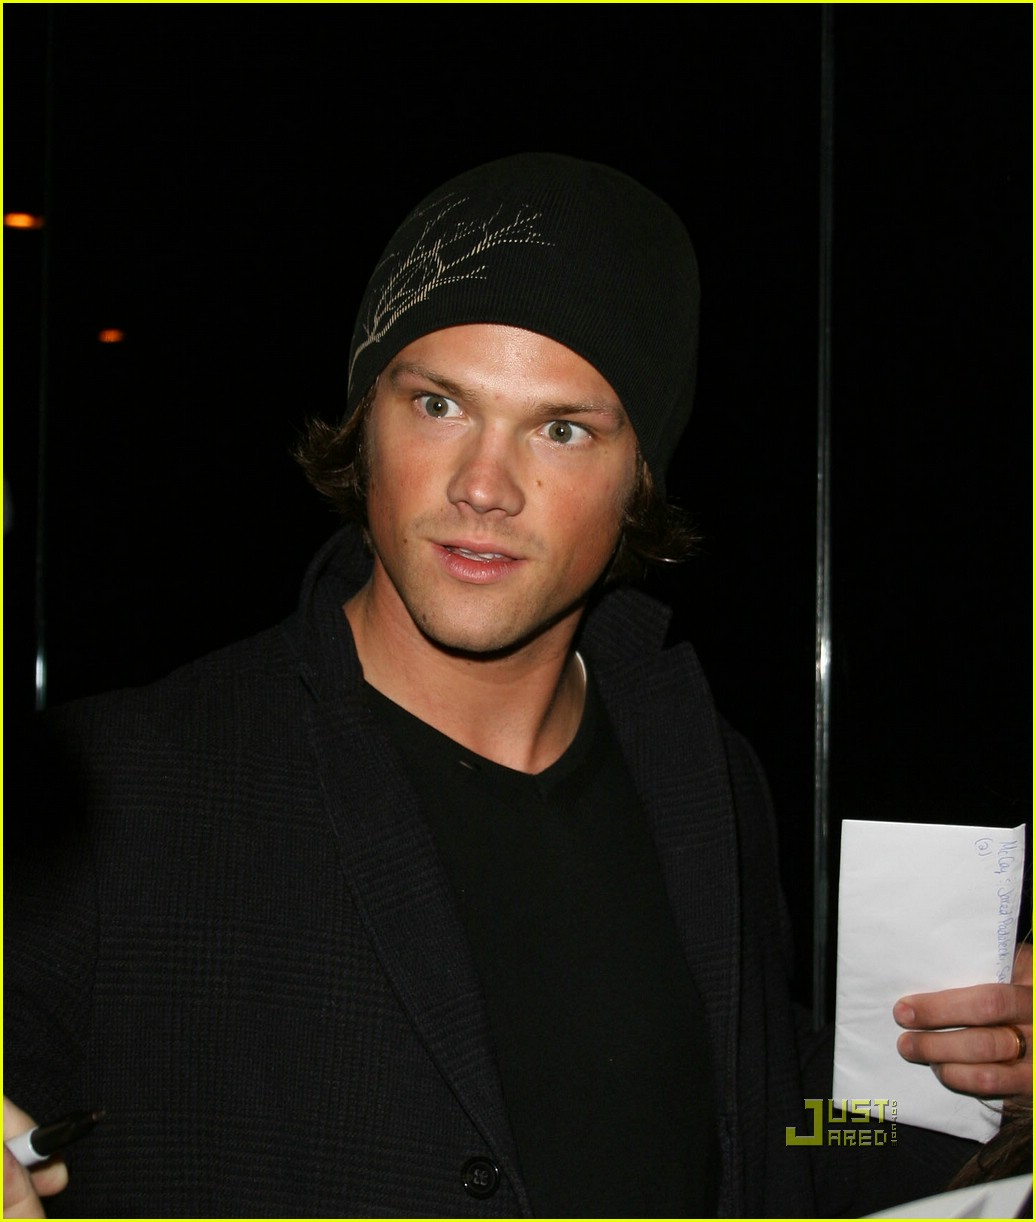 Jared Padalecki - Picture Colection